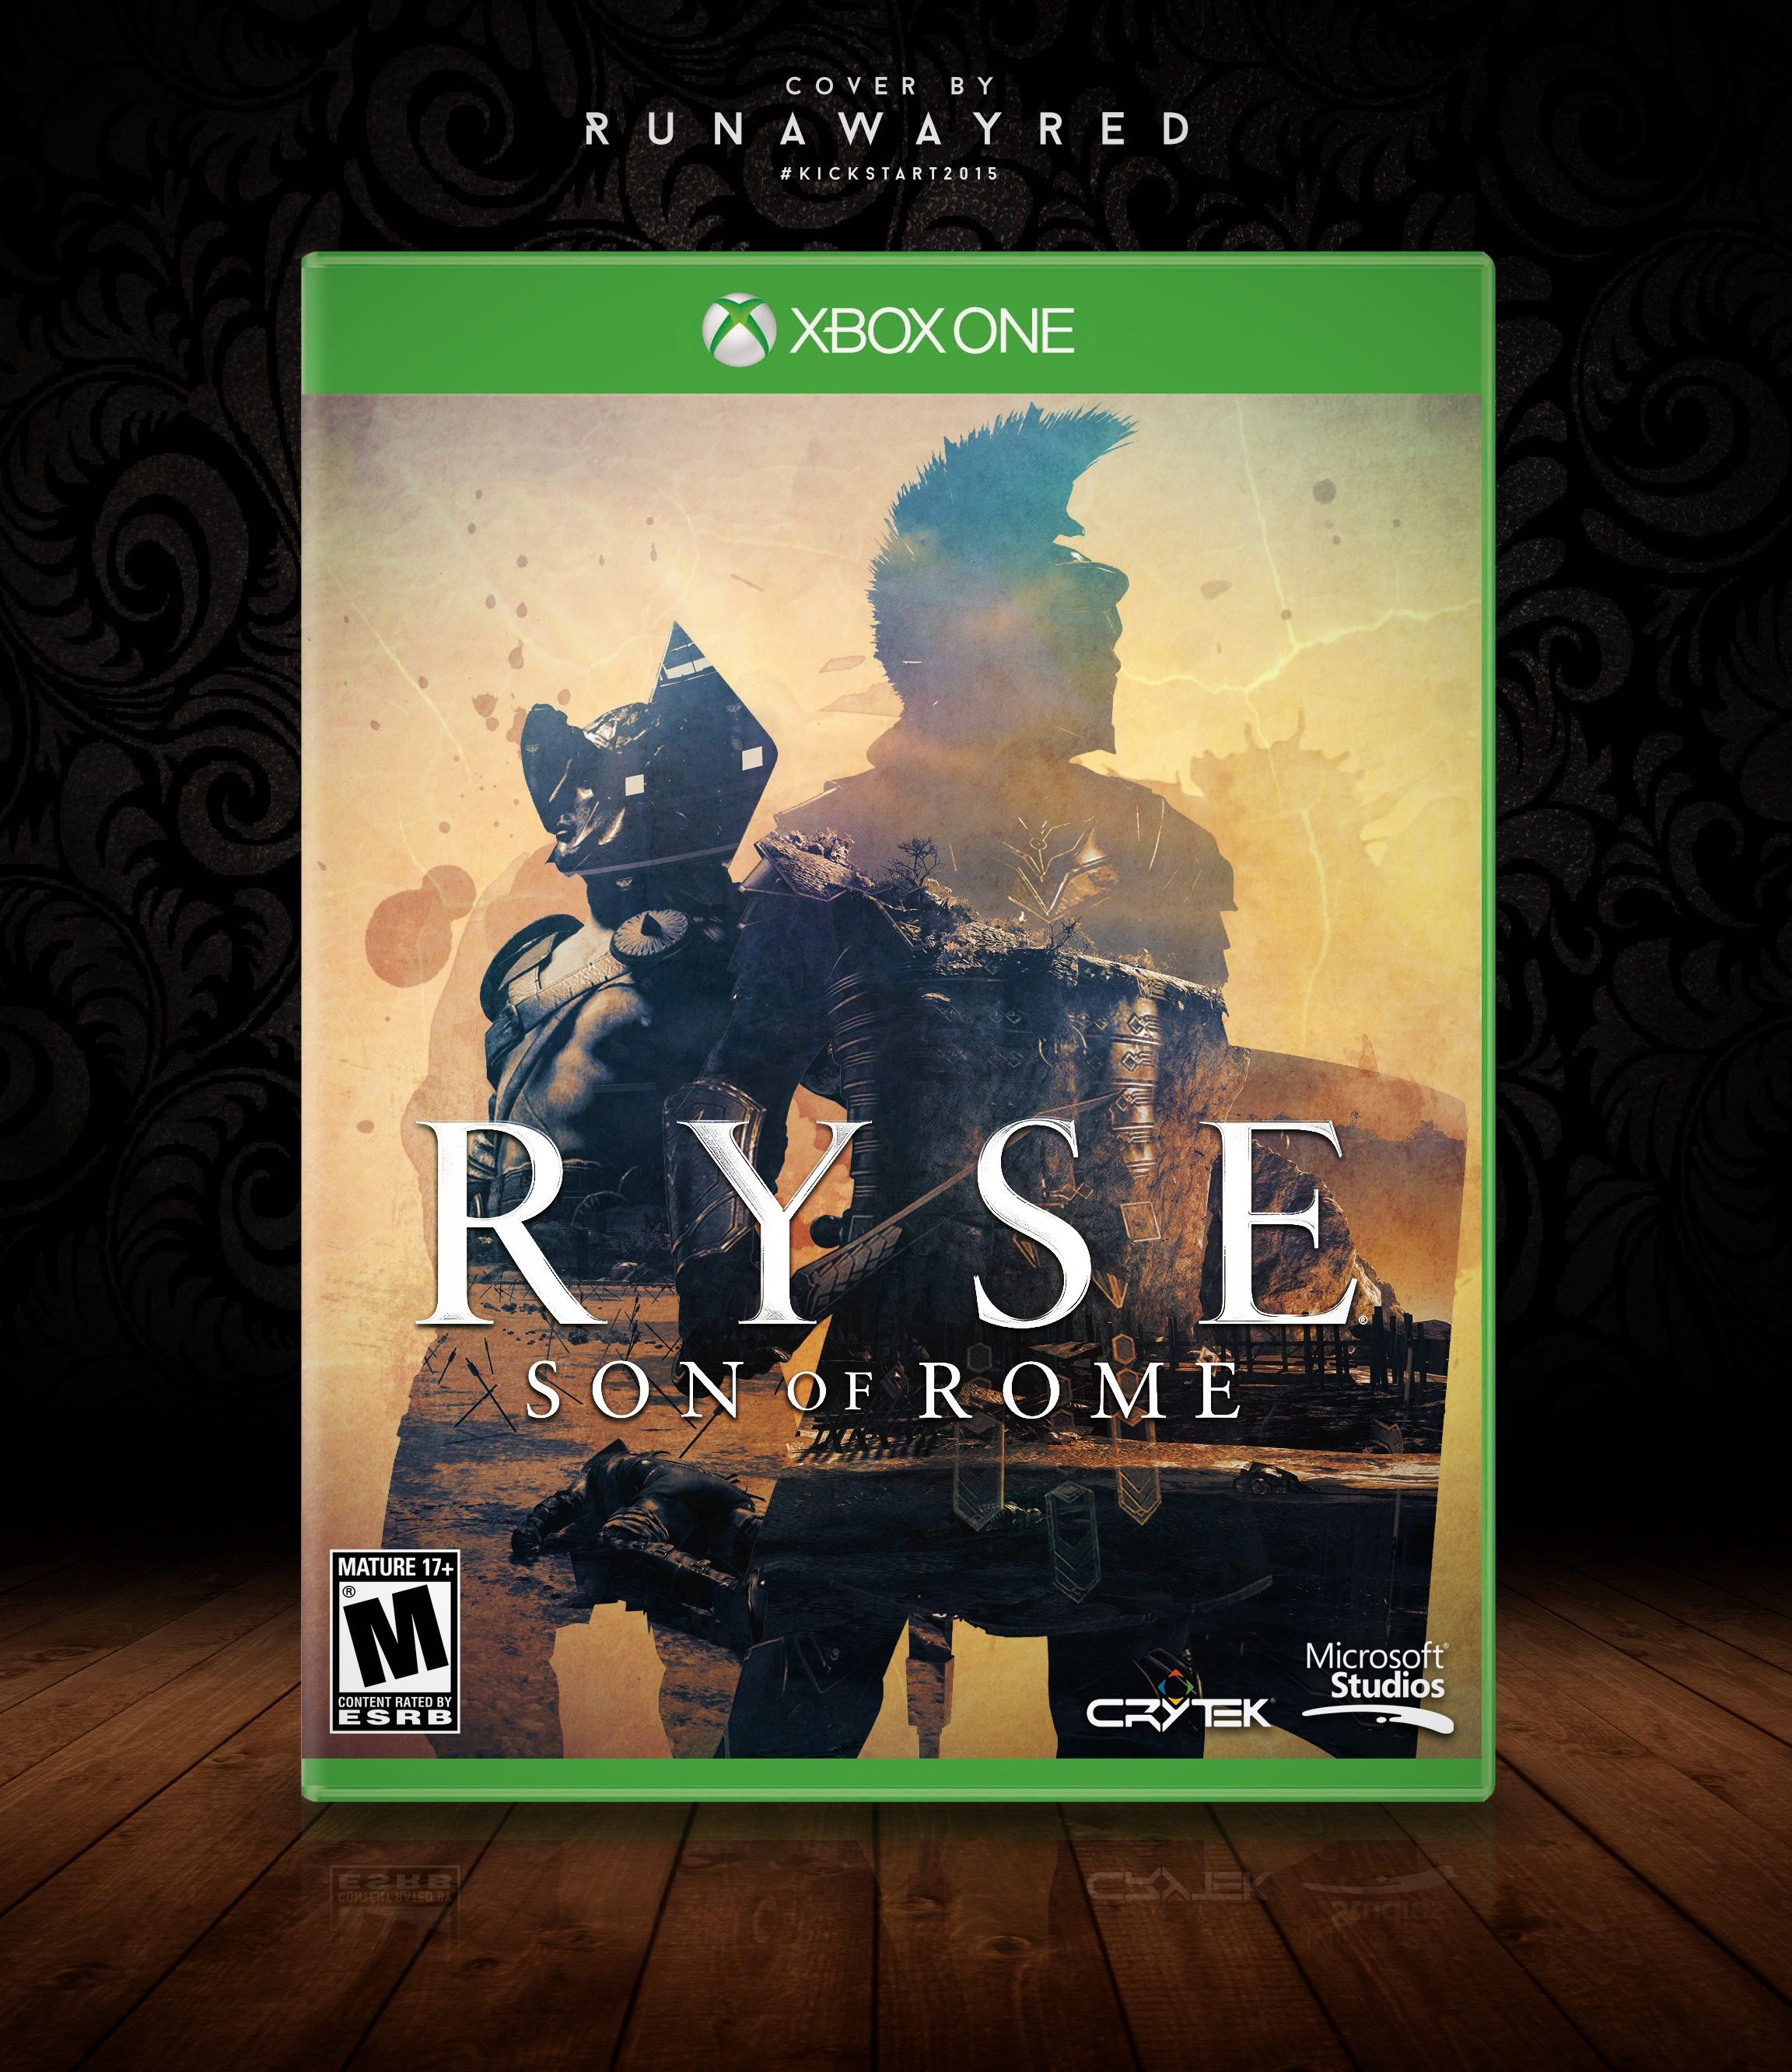 Ryse: Son of Rome box cover